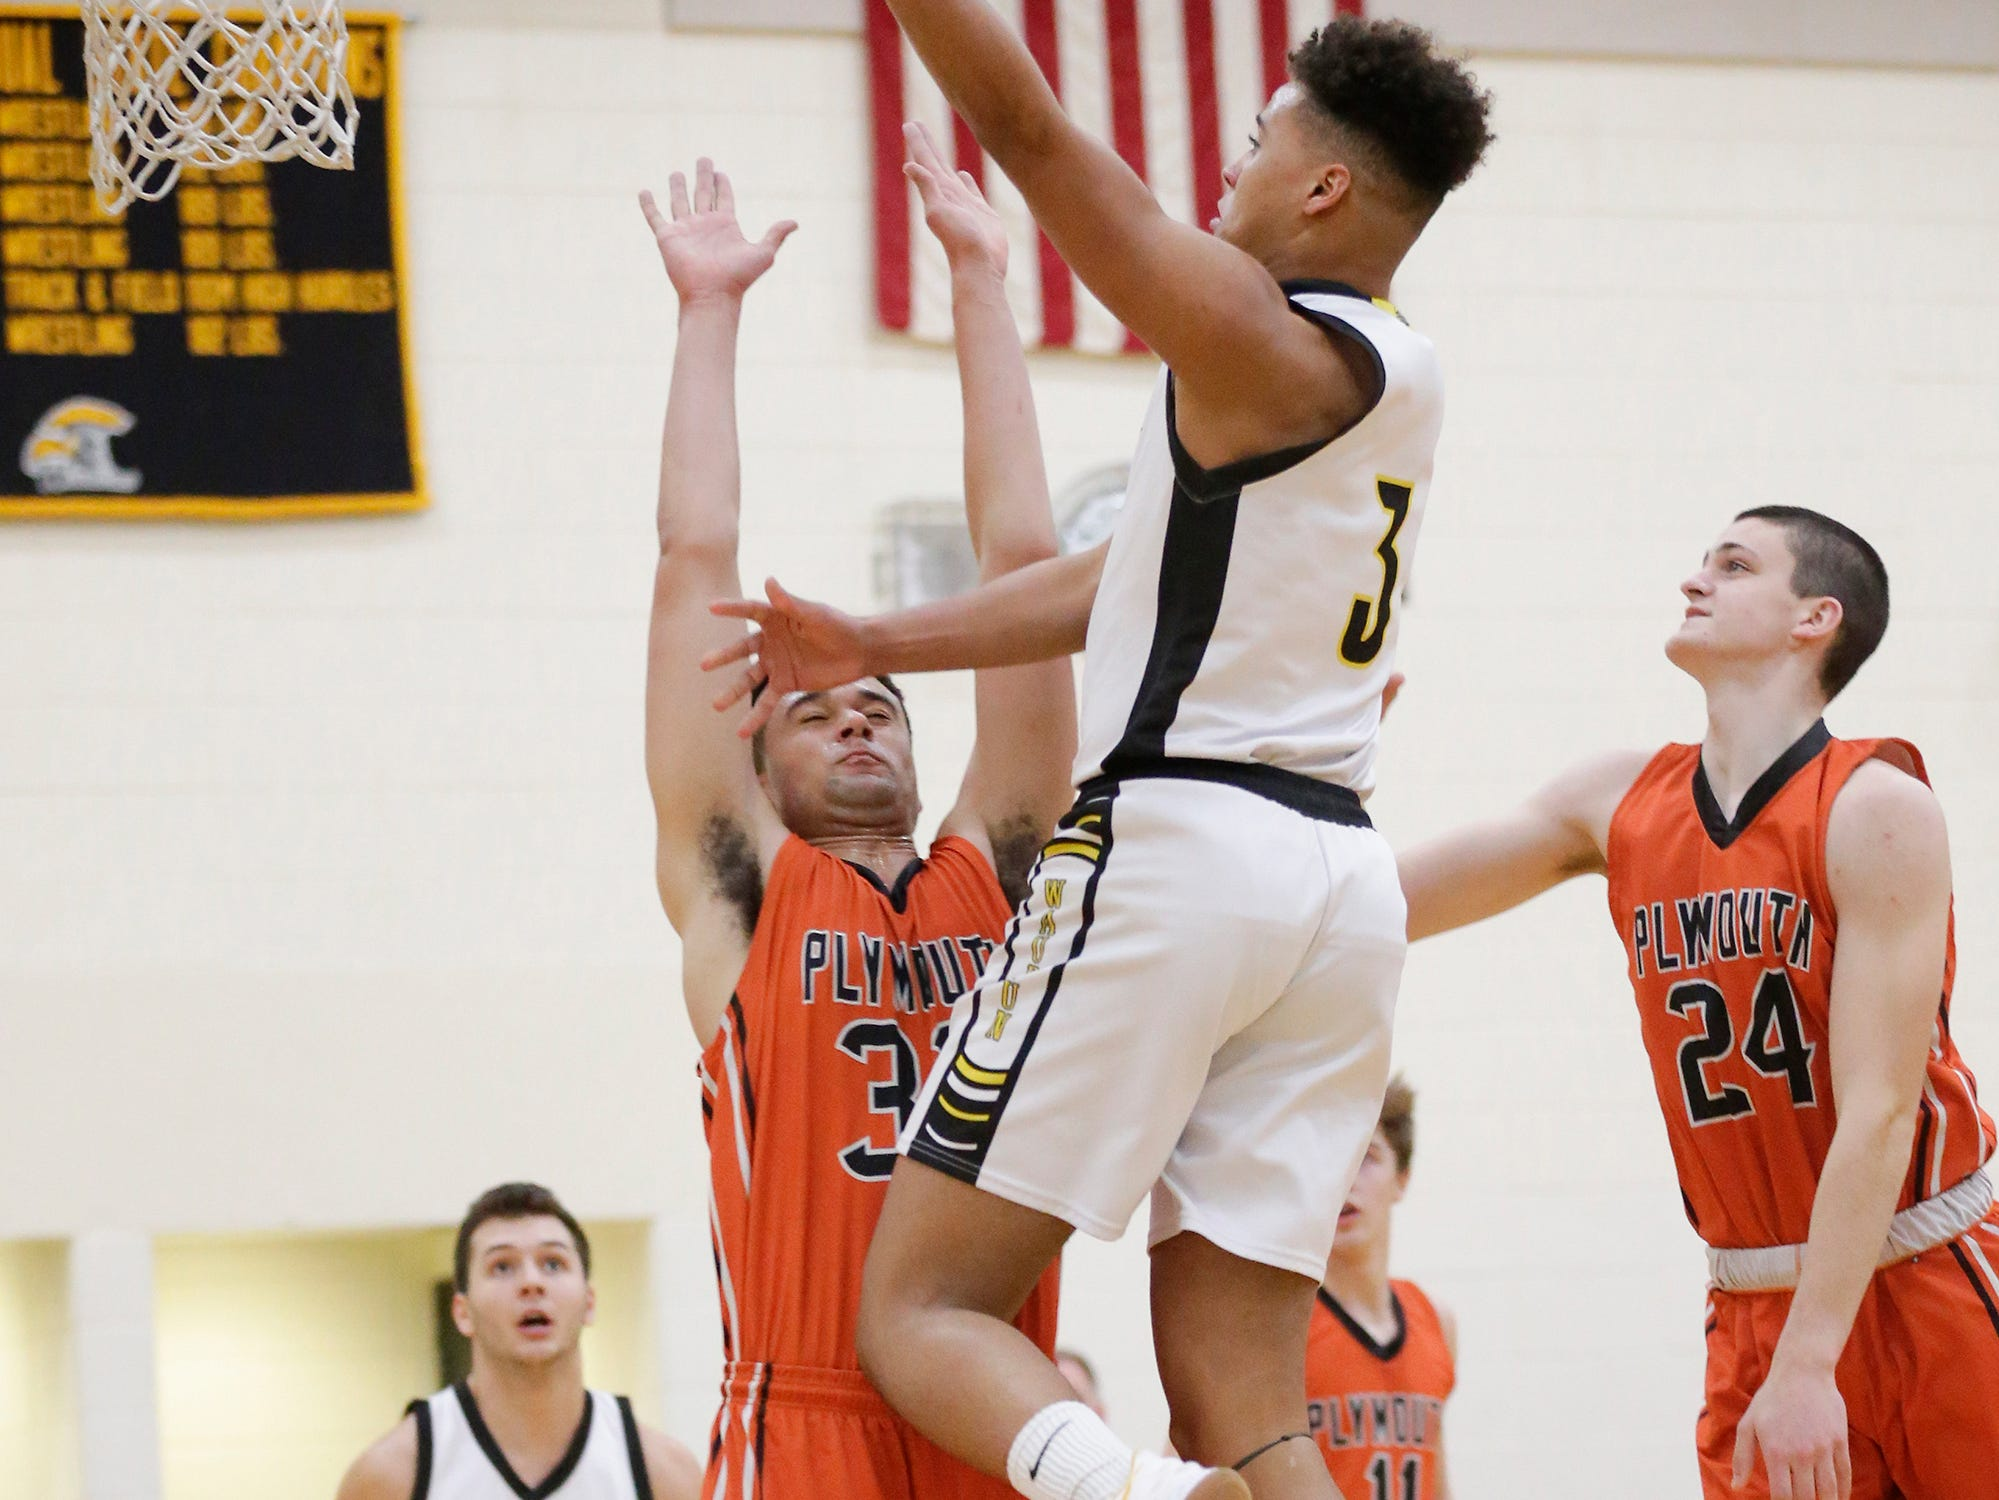 Waupun High School boys basketball's Quintin Winterfeldt goes up for a basket over Plymouth High School's Nick Falls (33) during their game Friday, February 15, 2019 in Waupun. Doug Raflik/USA TODAY NETWORK-Wisconsin